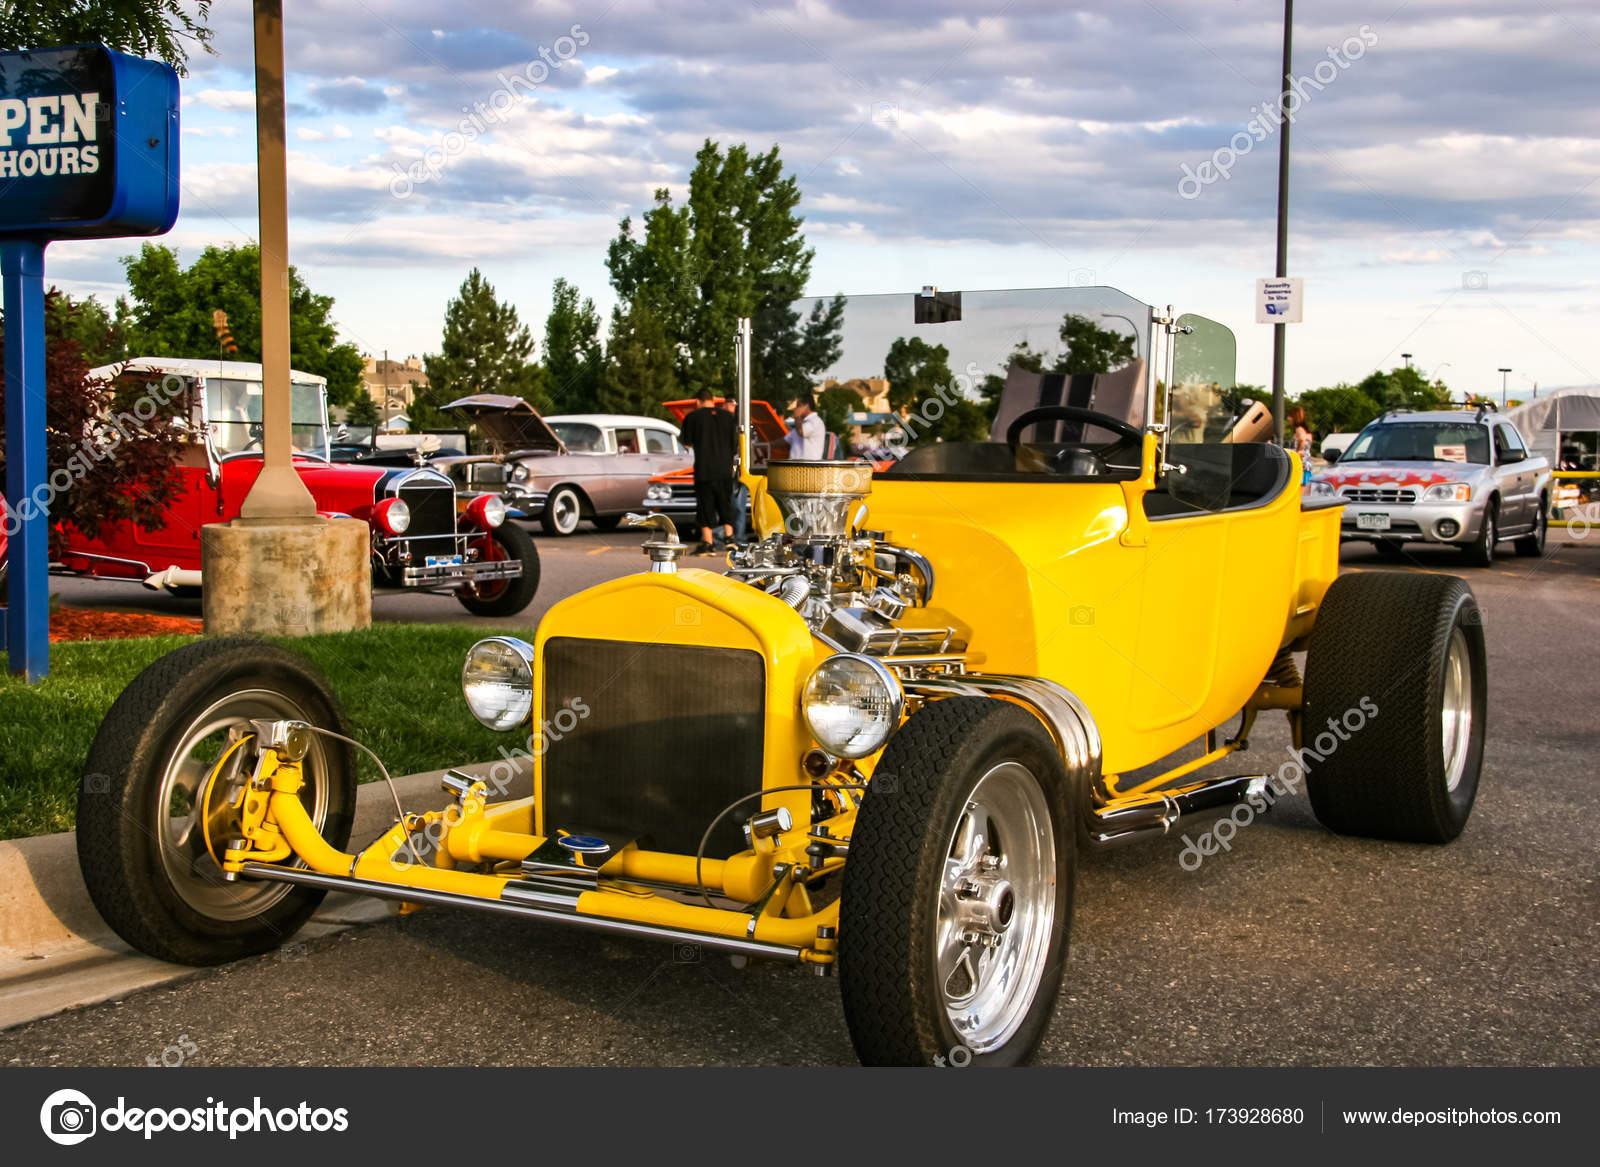 Burger King Classic Car show in Denver – Stock Editorial Photo ...